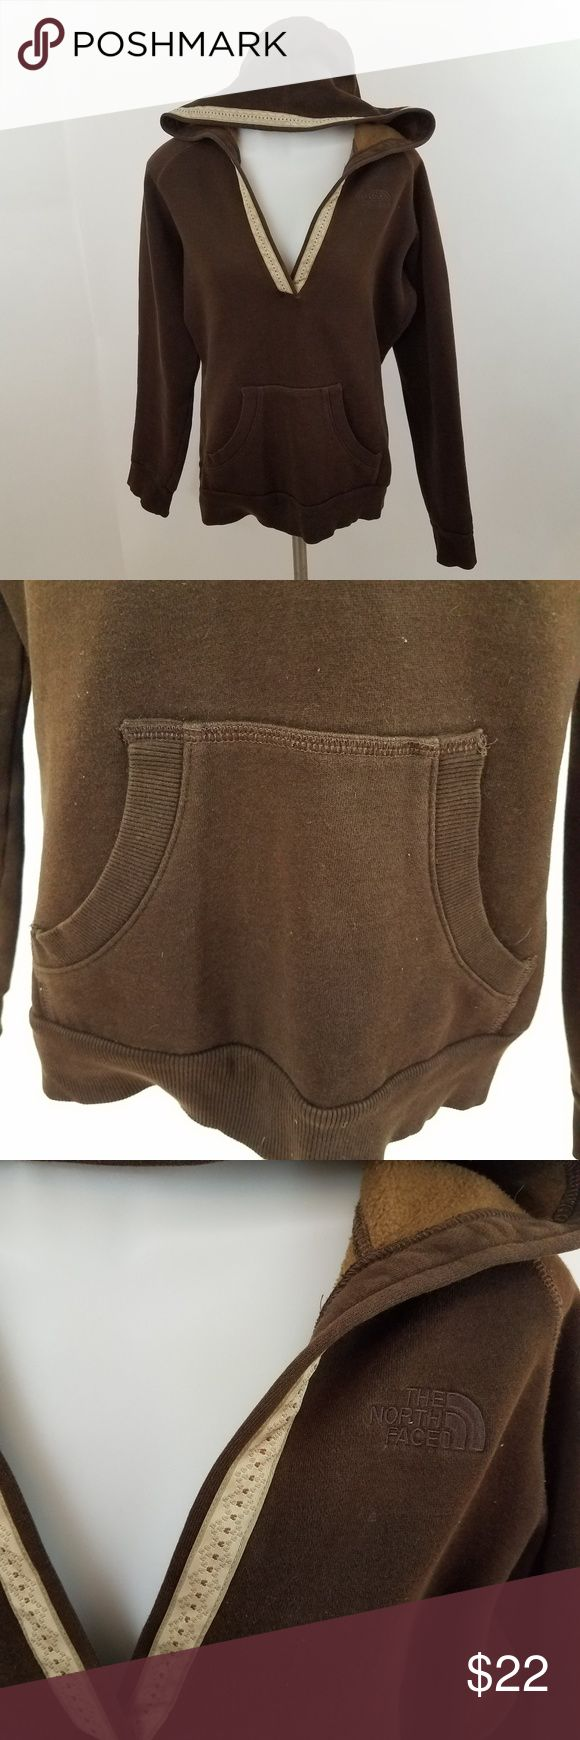 North face hoodie v-neck sweatshirt The north face brown hoodie v-neck womens M sweatshirt  Size m, see measurements below. Used. bleach stains. See photos.  Measurements are taken while item is lying flat.  Length: 26 Inches  Armpit to Armpit: 21 Inches  Inv AM. The North Face Tops Sweatshirts & Hoodies